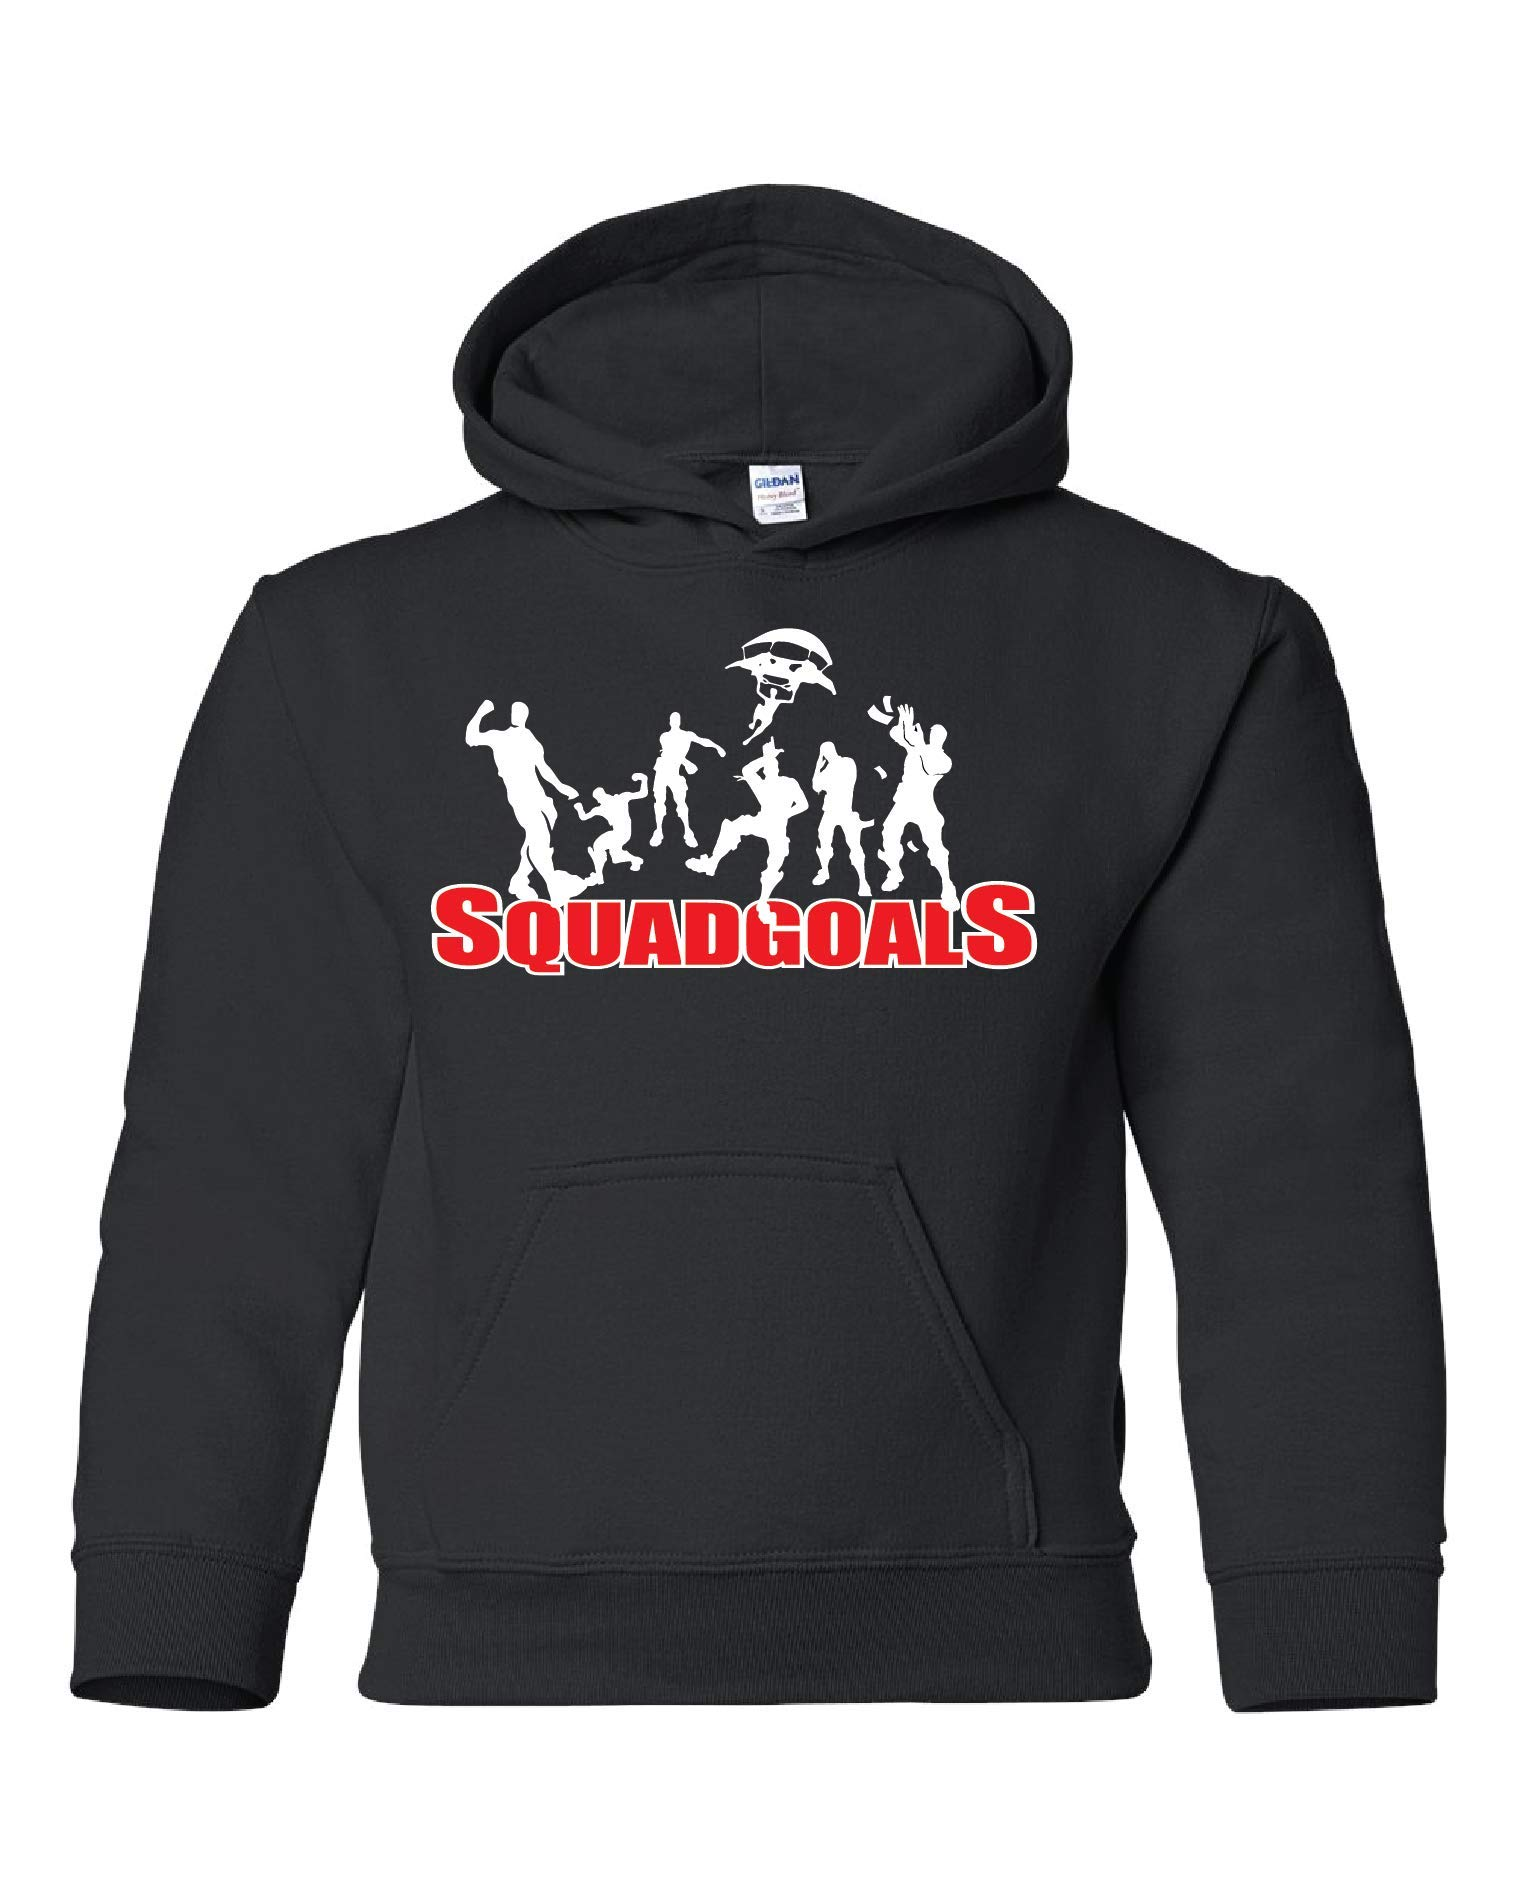 Fortnite Shirt (Youth) - Squad Goals - Add On Bundle Available (Medium, Black (Hoodie))